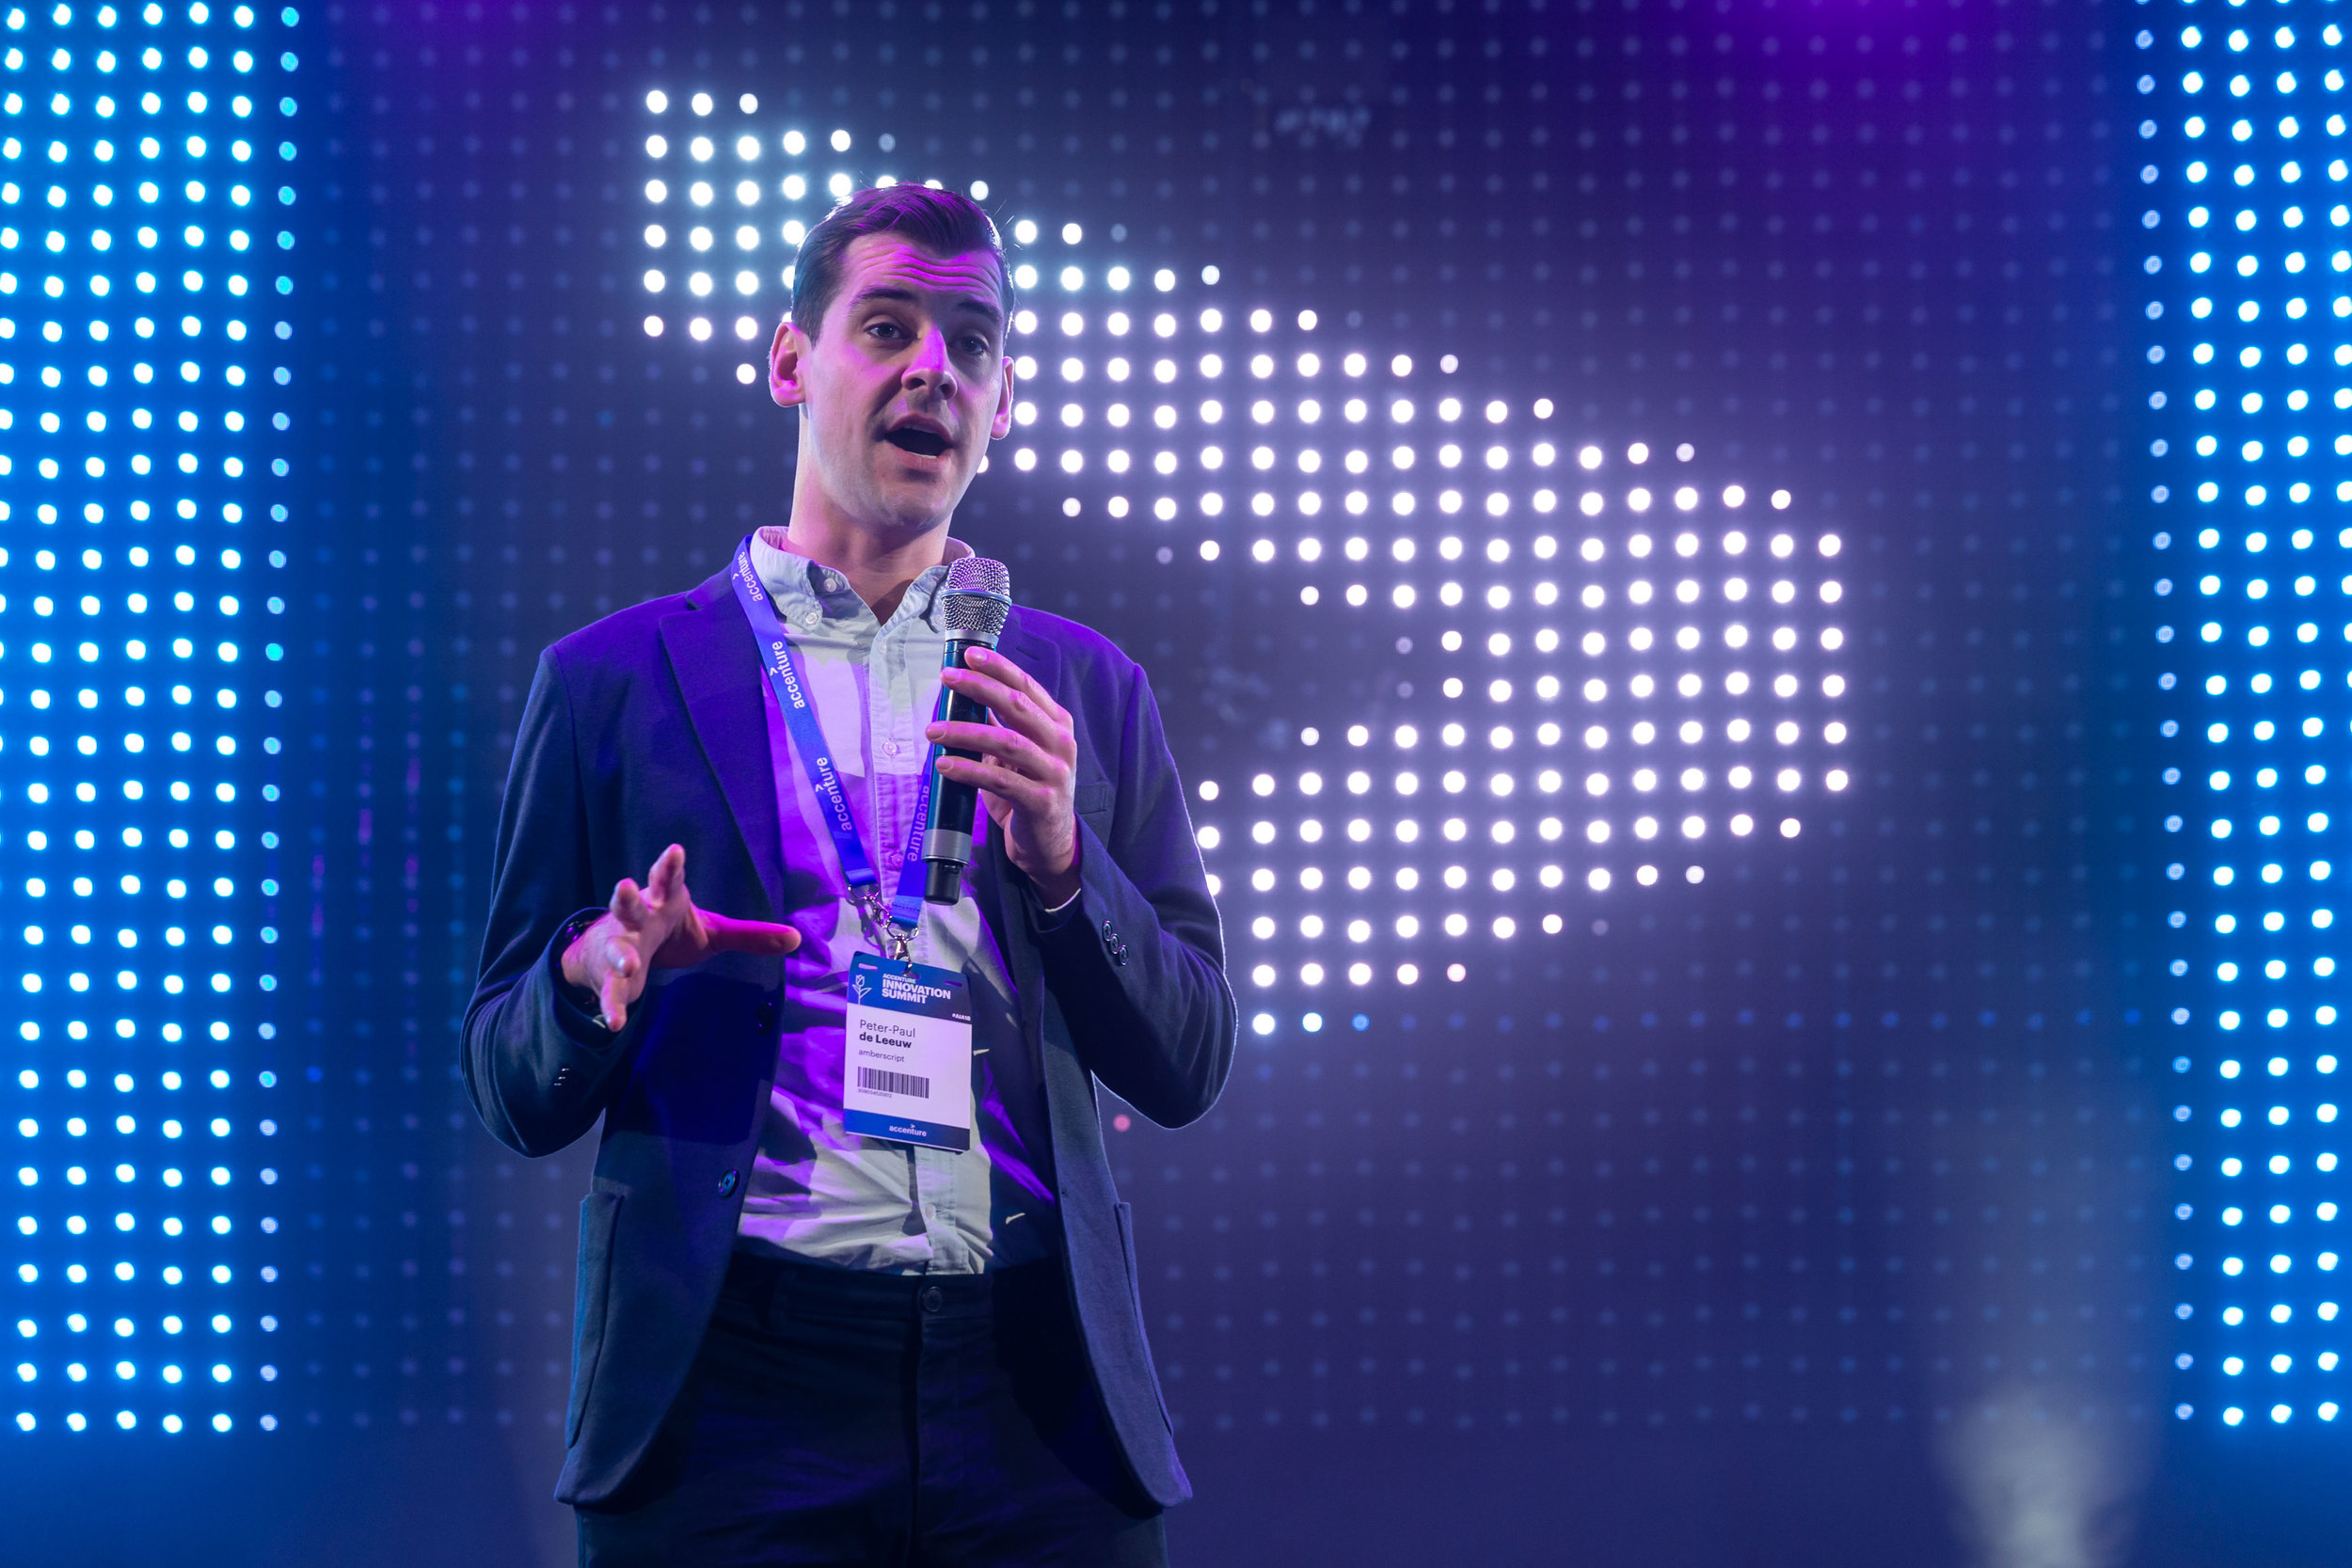 Co-founder Peter Paul de Leeuw van Amberscript tijdens de Investor Stage tijdens de Accenture Innovation Awards Finale